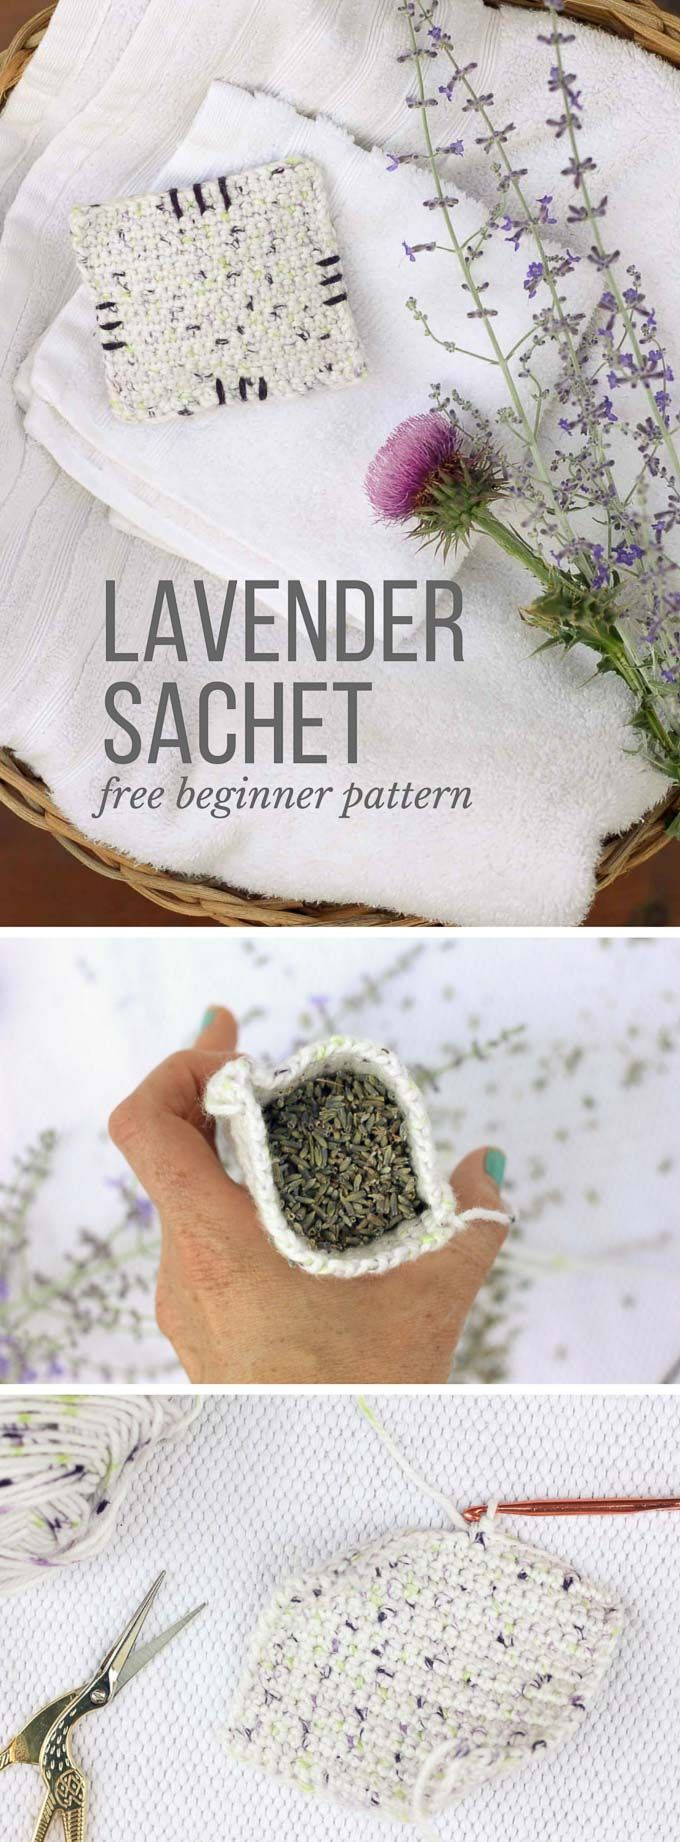 "This free crochet pattern is perfect for beginners and a great way to use up dried lavender from your garden! Pop one of these crochet lavender sachets in the dryer and you've got natural and inexpensive way to keep your laundry smelling fresh! Pattern features ""I Love This Cotton"" yarn. 